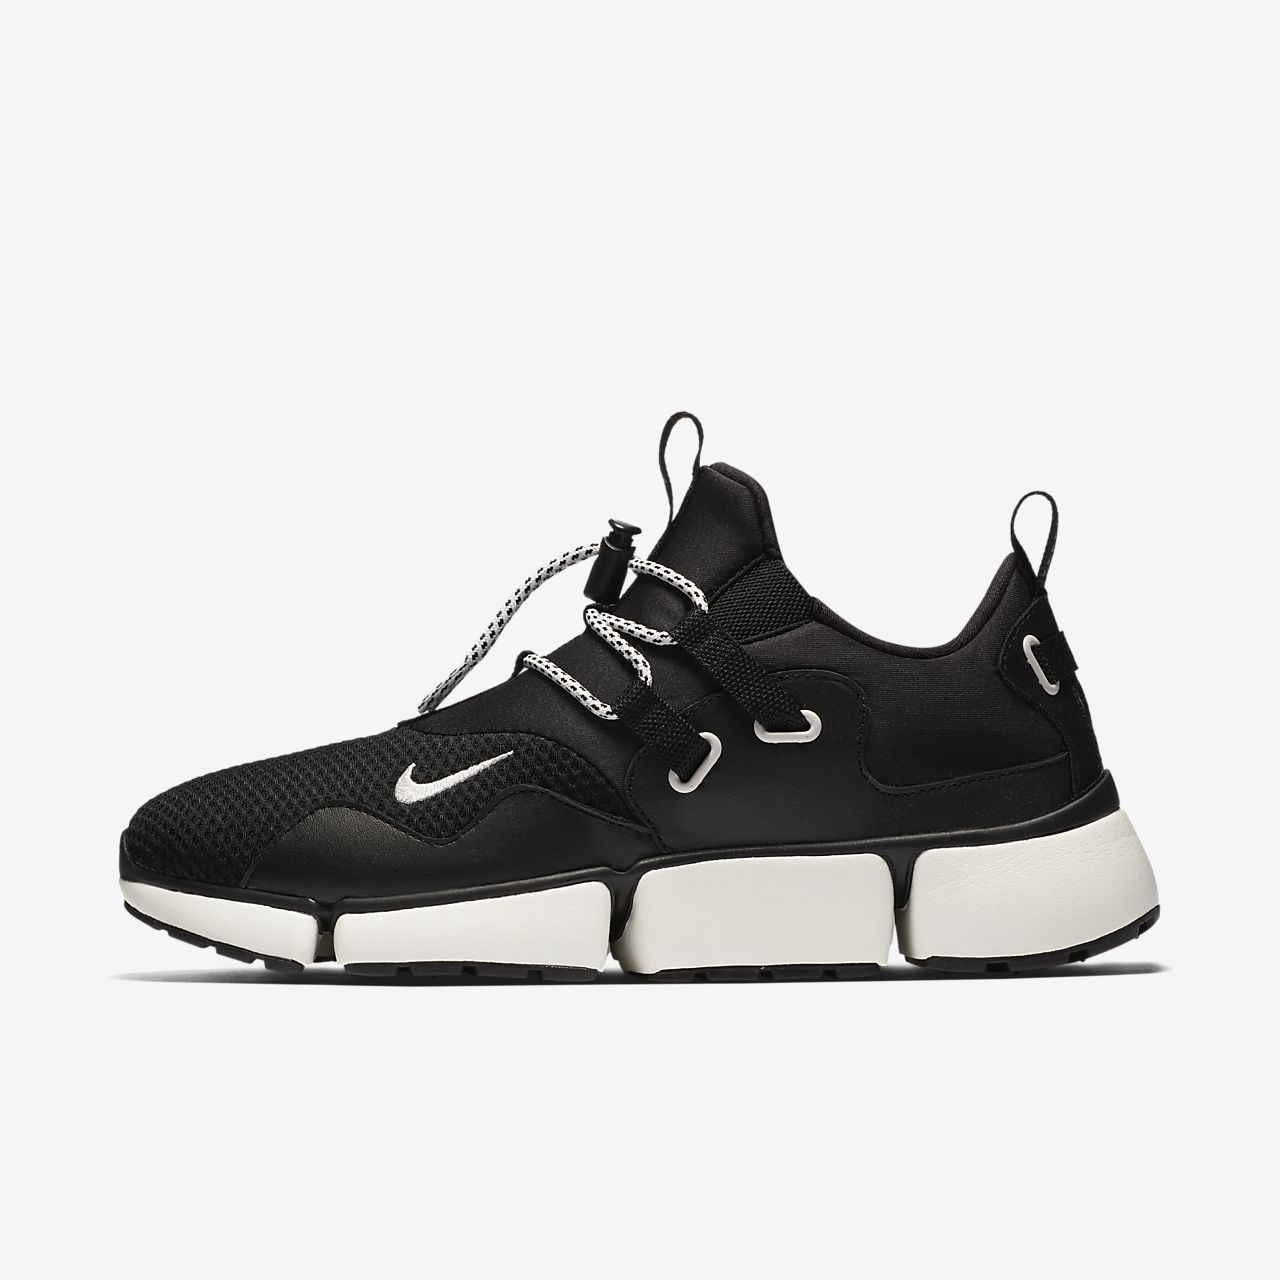 Nike Air Zoom LWP '16 SP Men's Lifestyle Shoes White/Black oK1357F